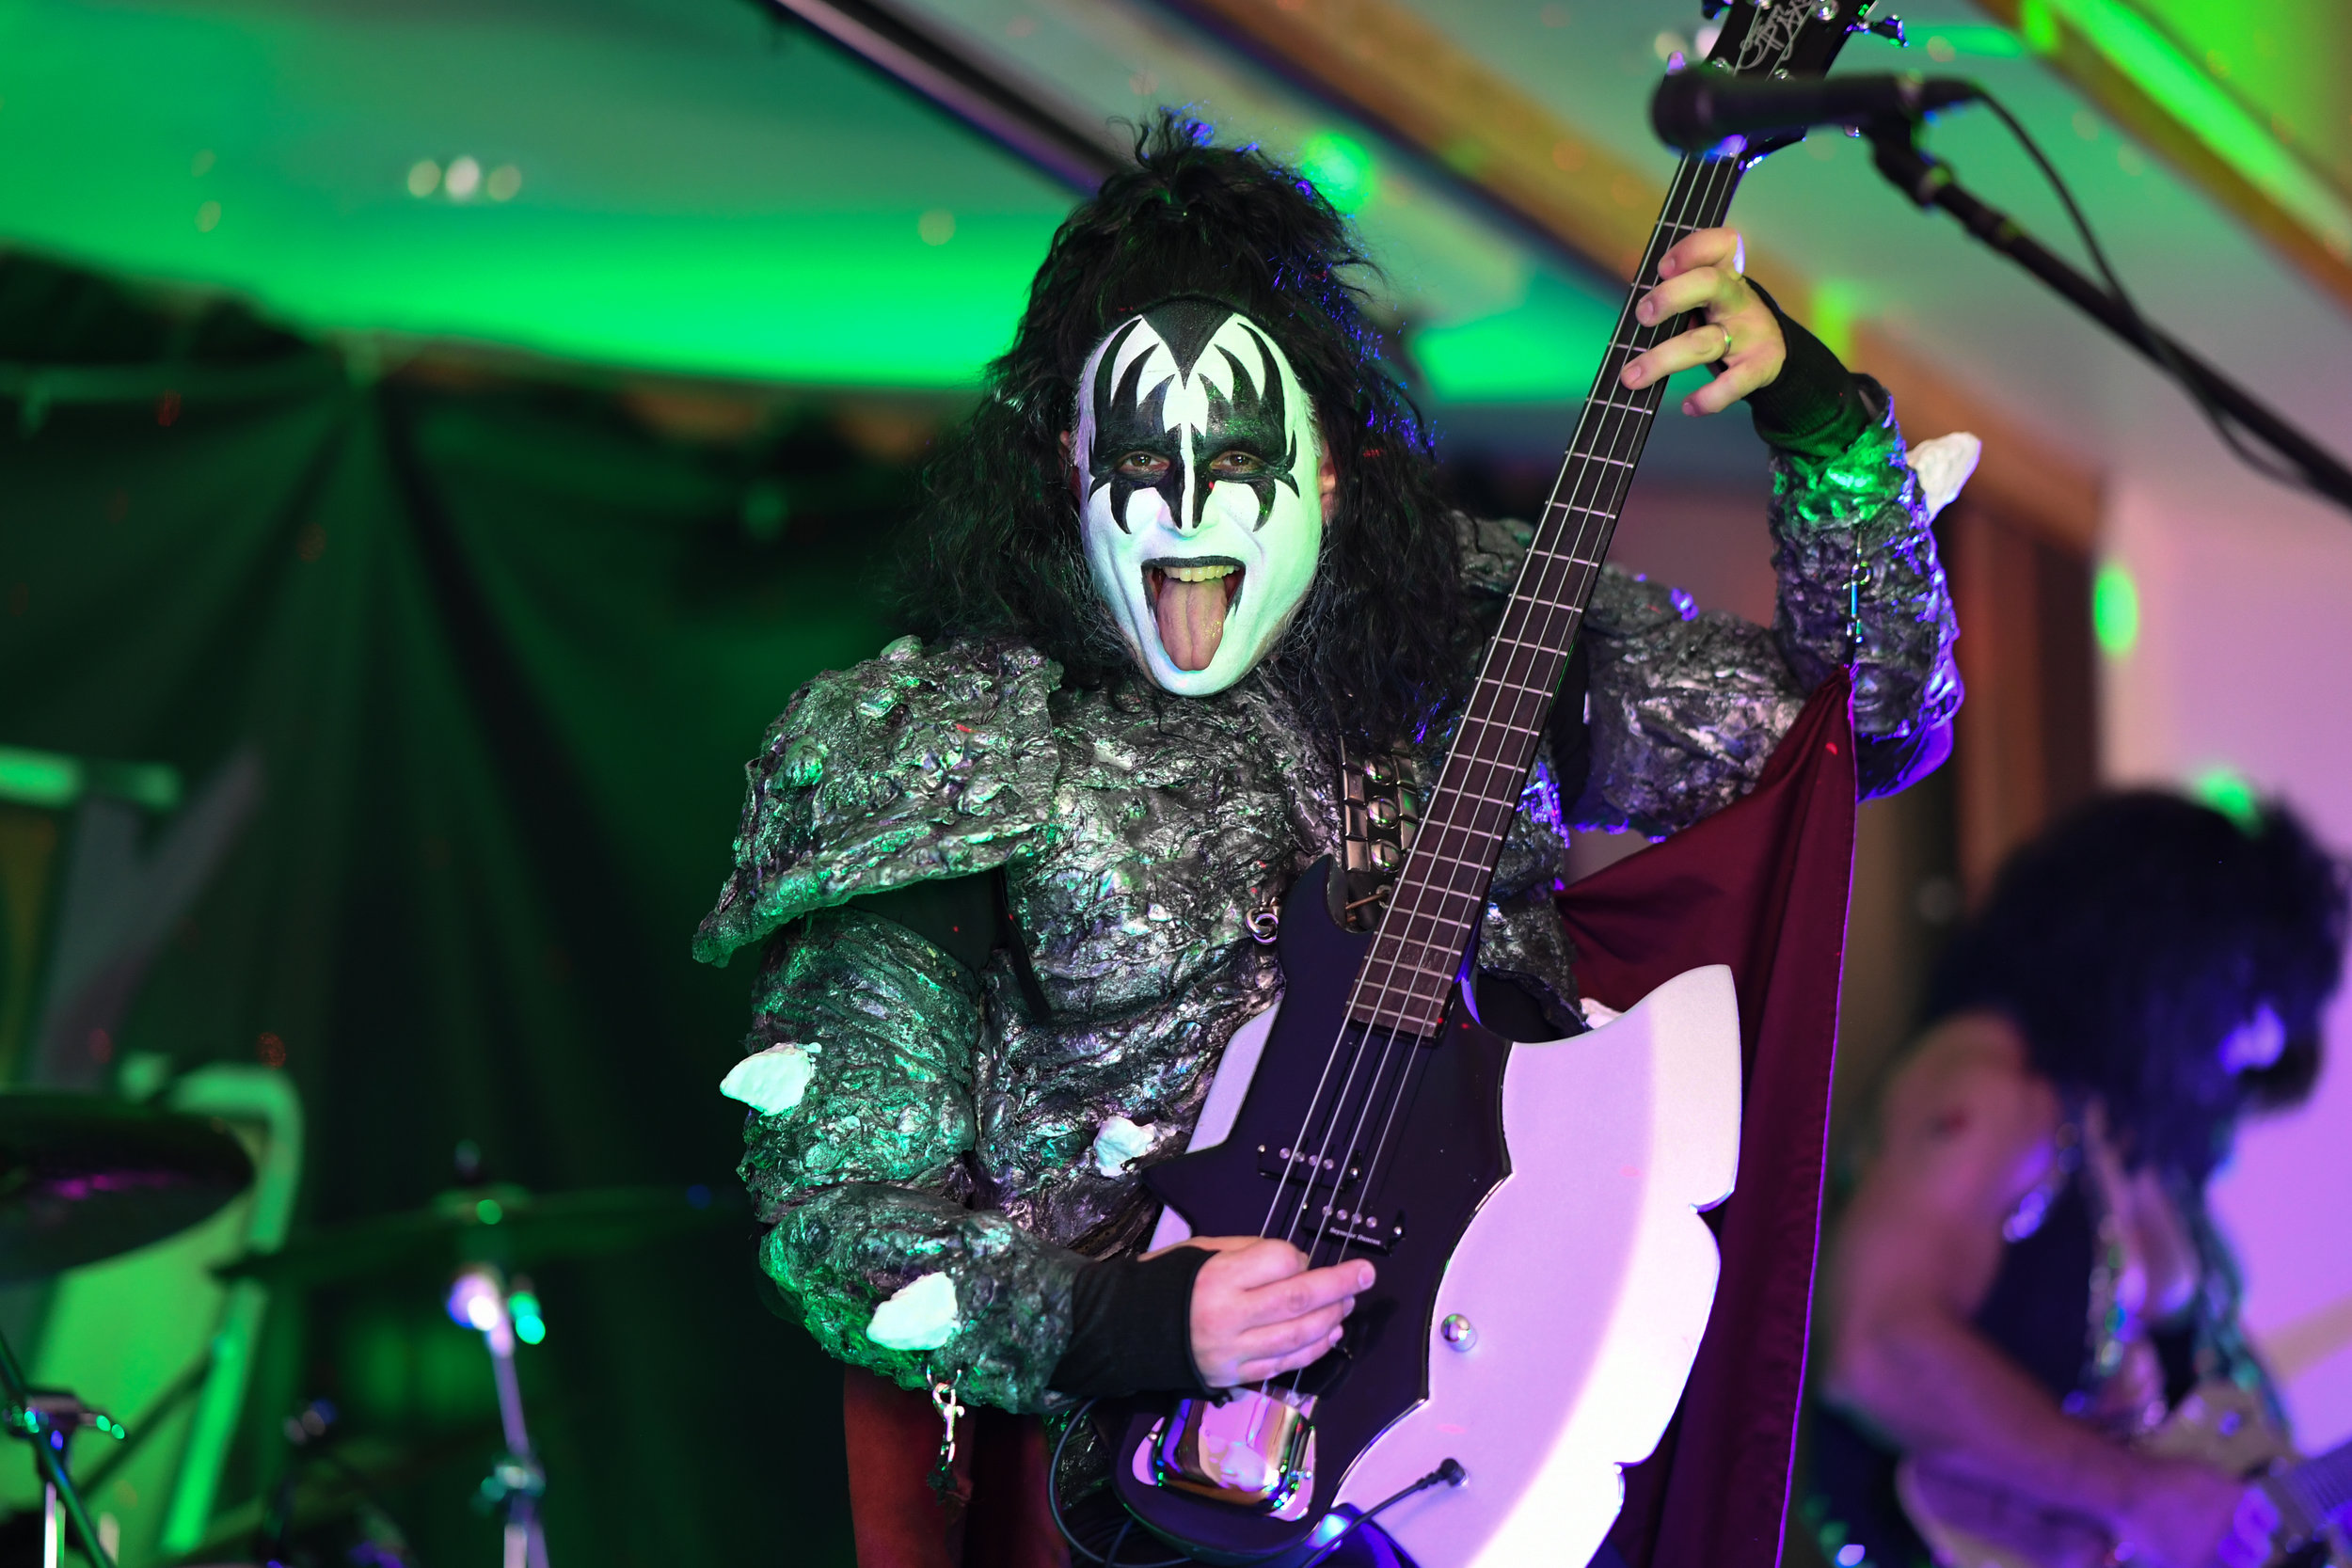 moa--kiss-forever-rock-addiction_44804247455_o.jpg